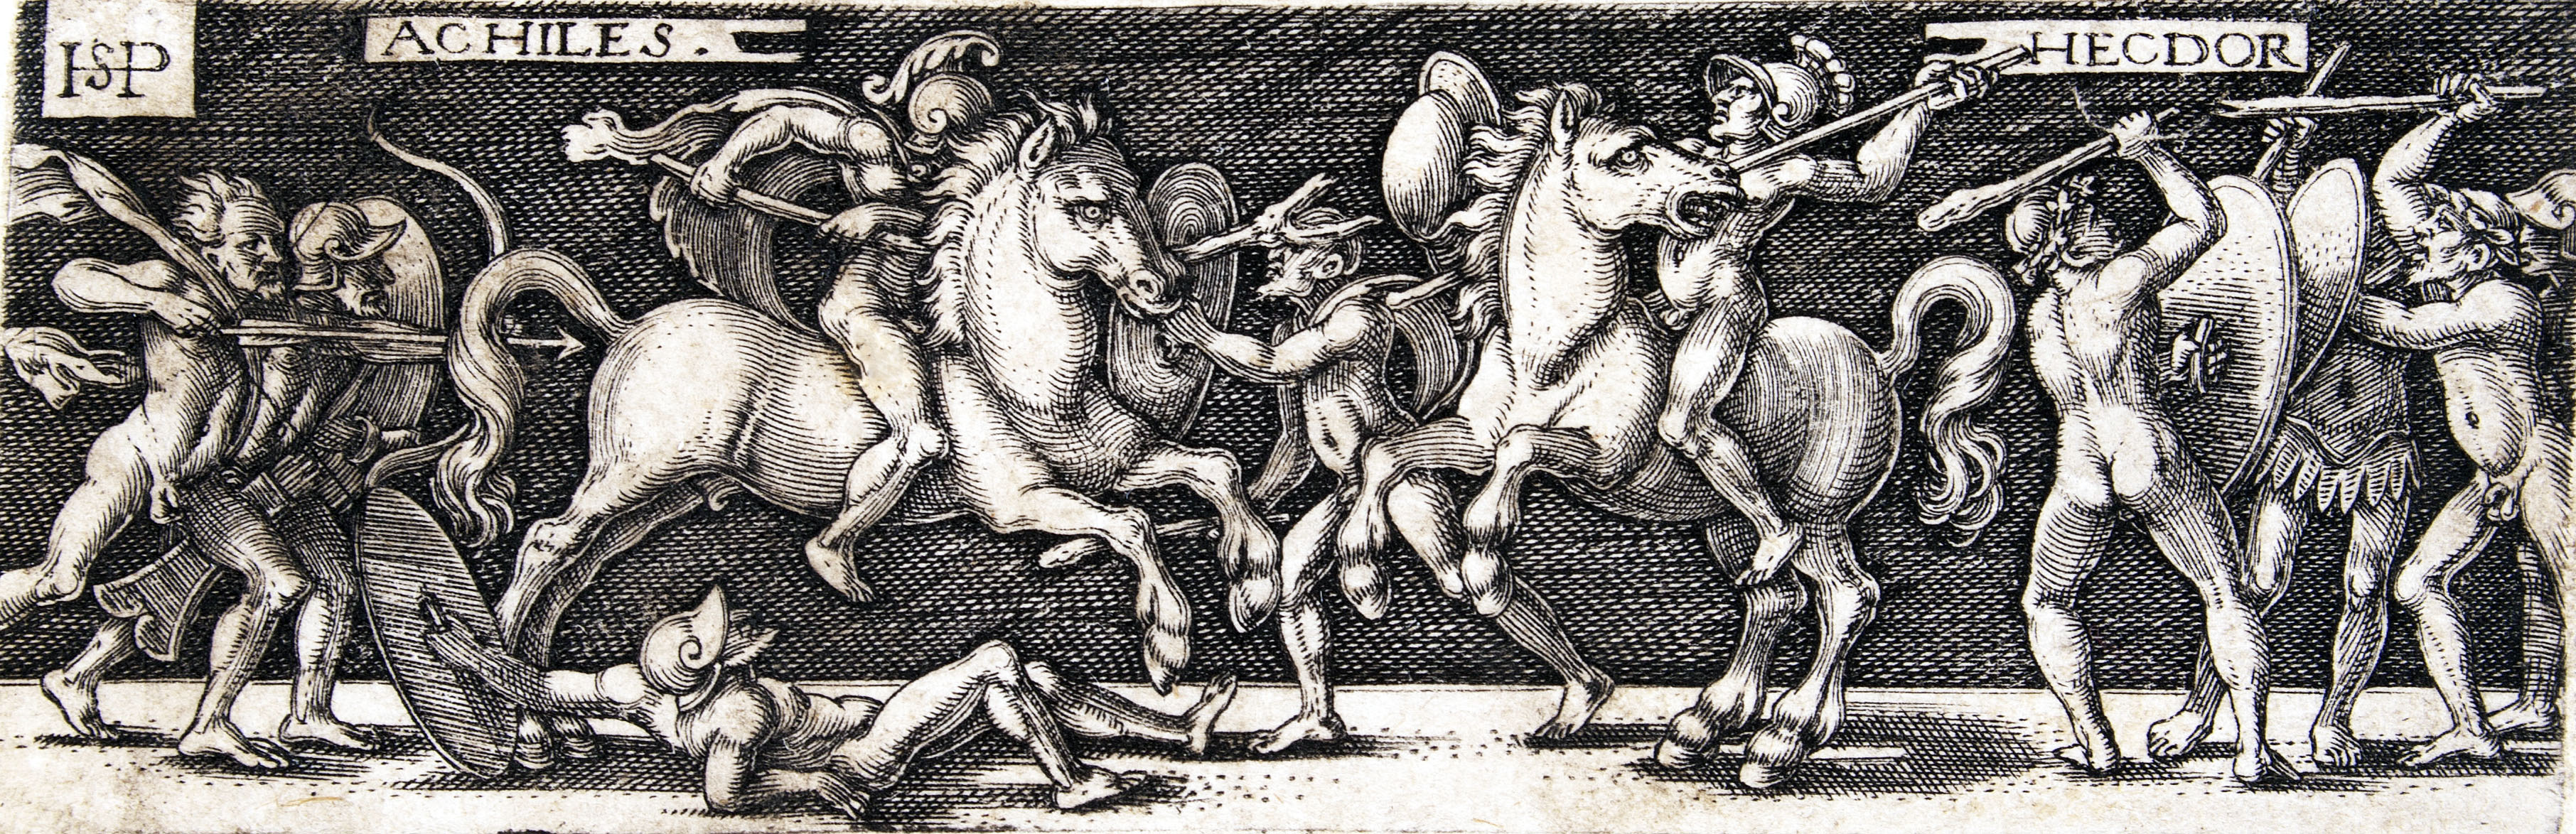 Image 2 Hans Sebold Beham Achilles and Hector Engraving on laid paper 1510-30